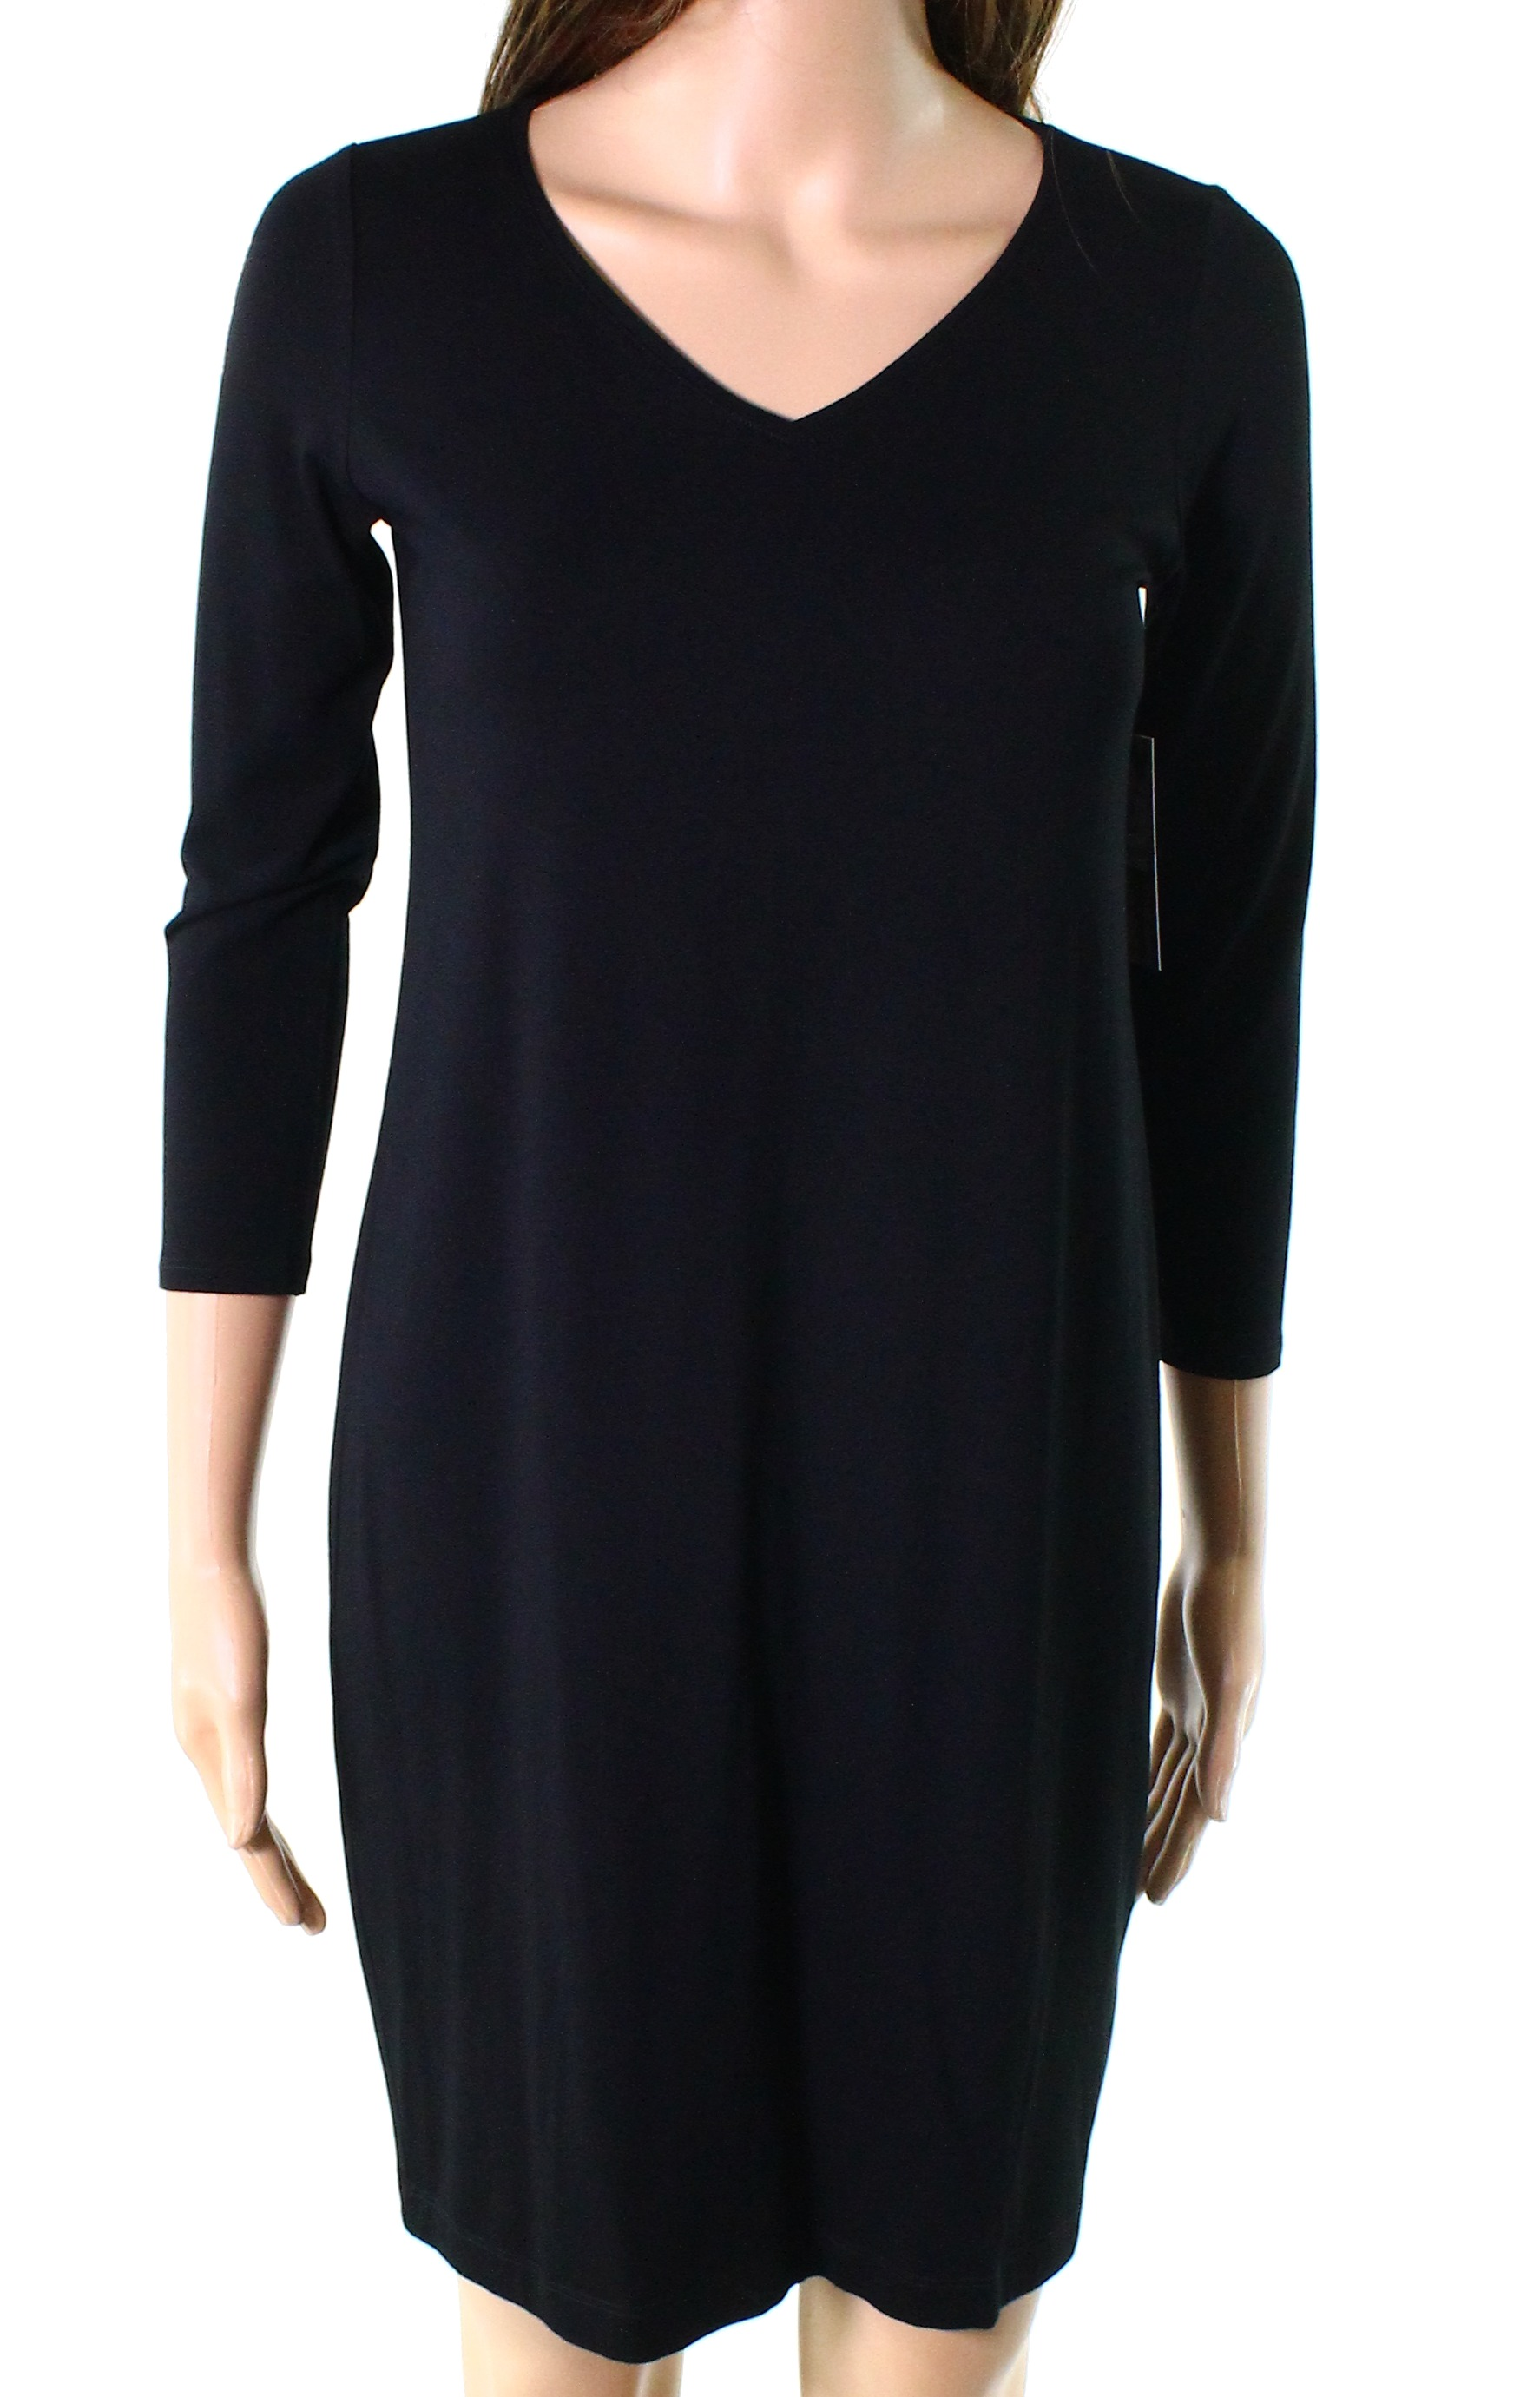 300f9f89f79 Details about Eileen Fisher NEW Black Womens Small S Long Sleeve V-Neck Shift  Dress  138- 052